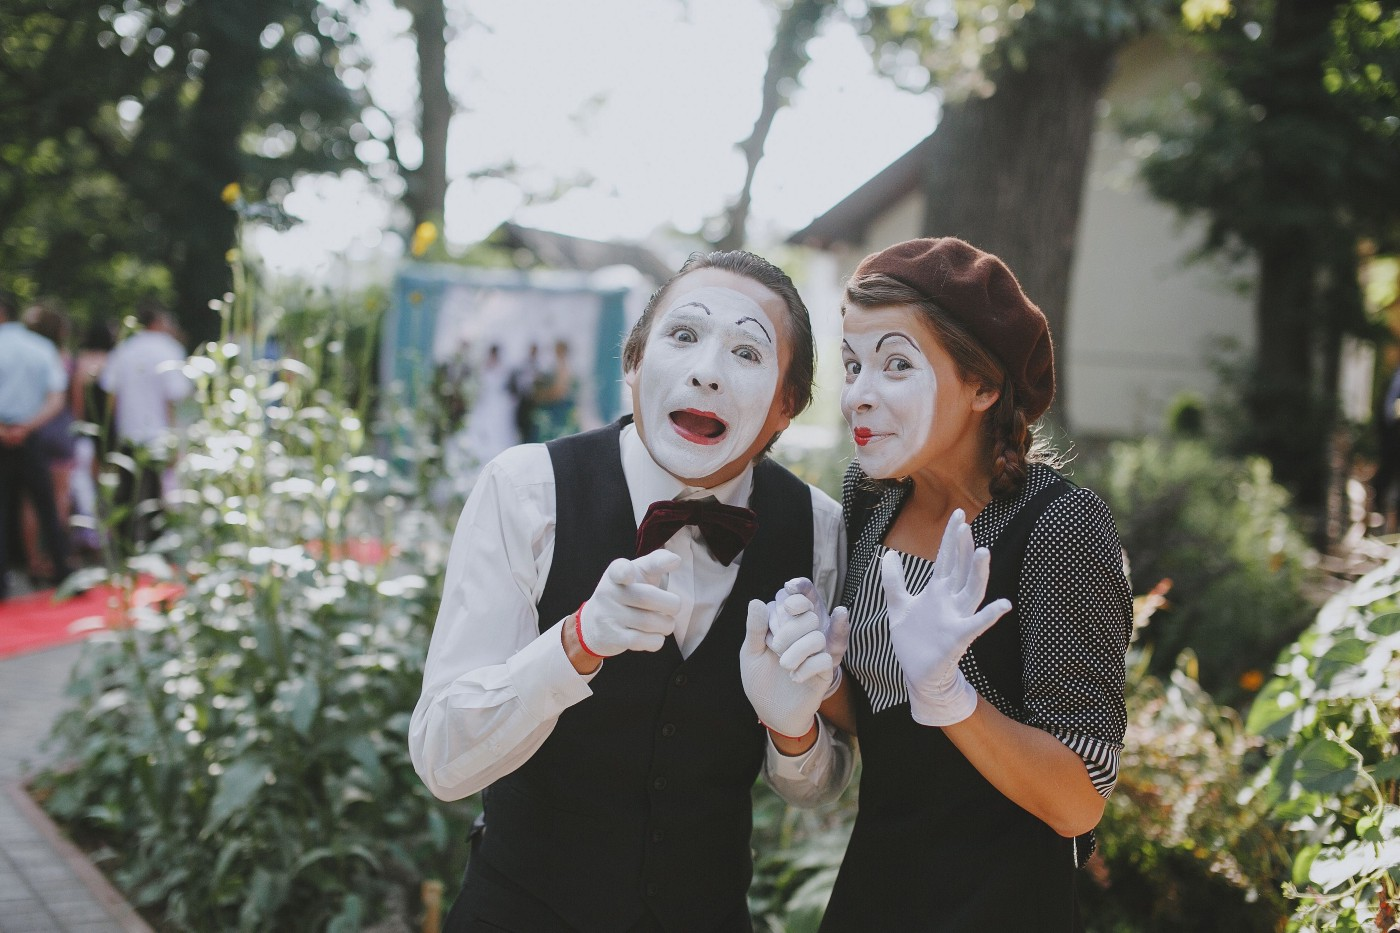 People love to hate mimes. Here's a picture of two mimes.